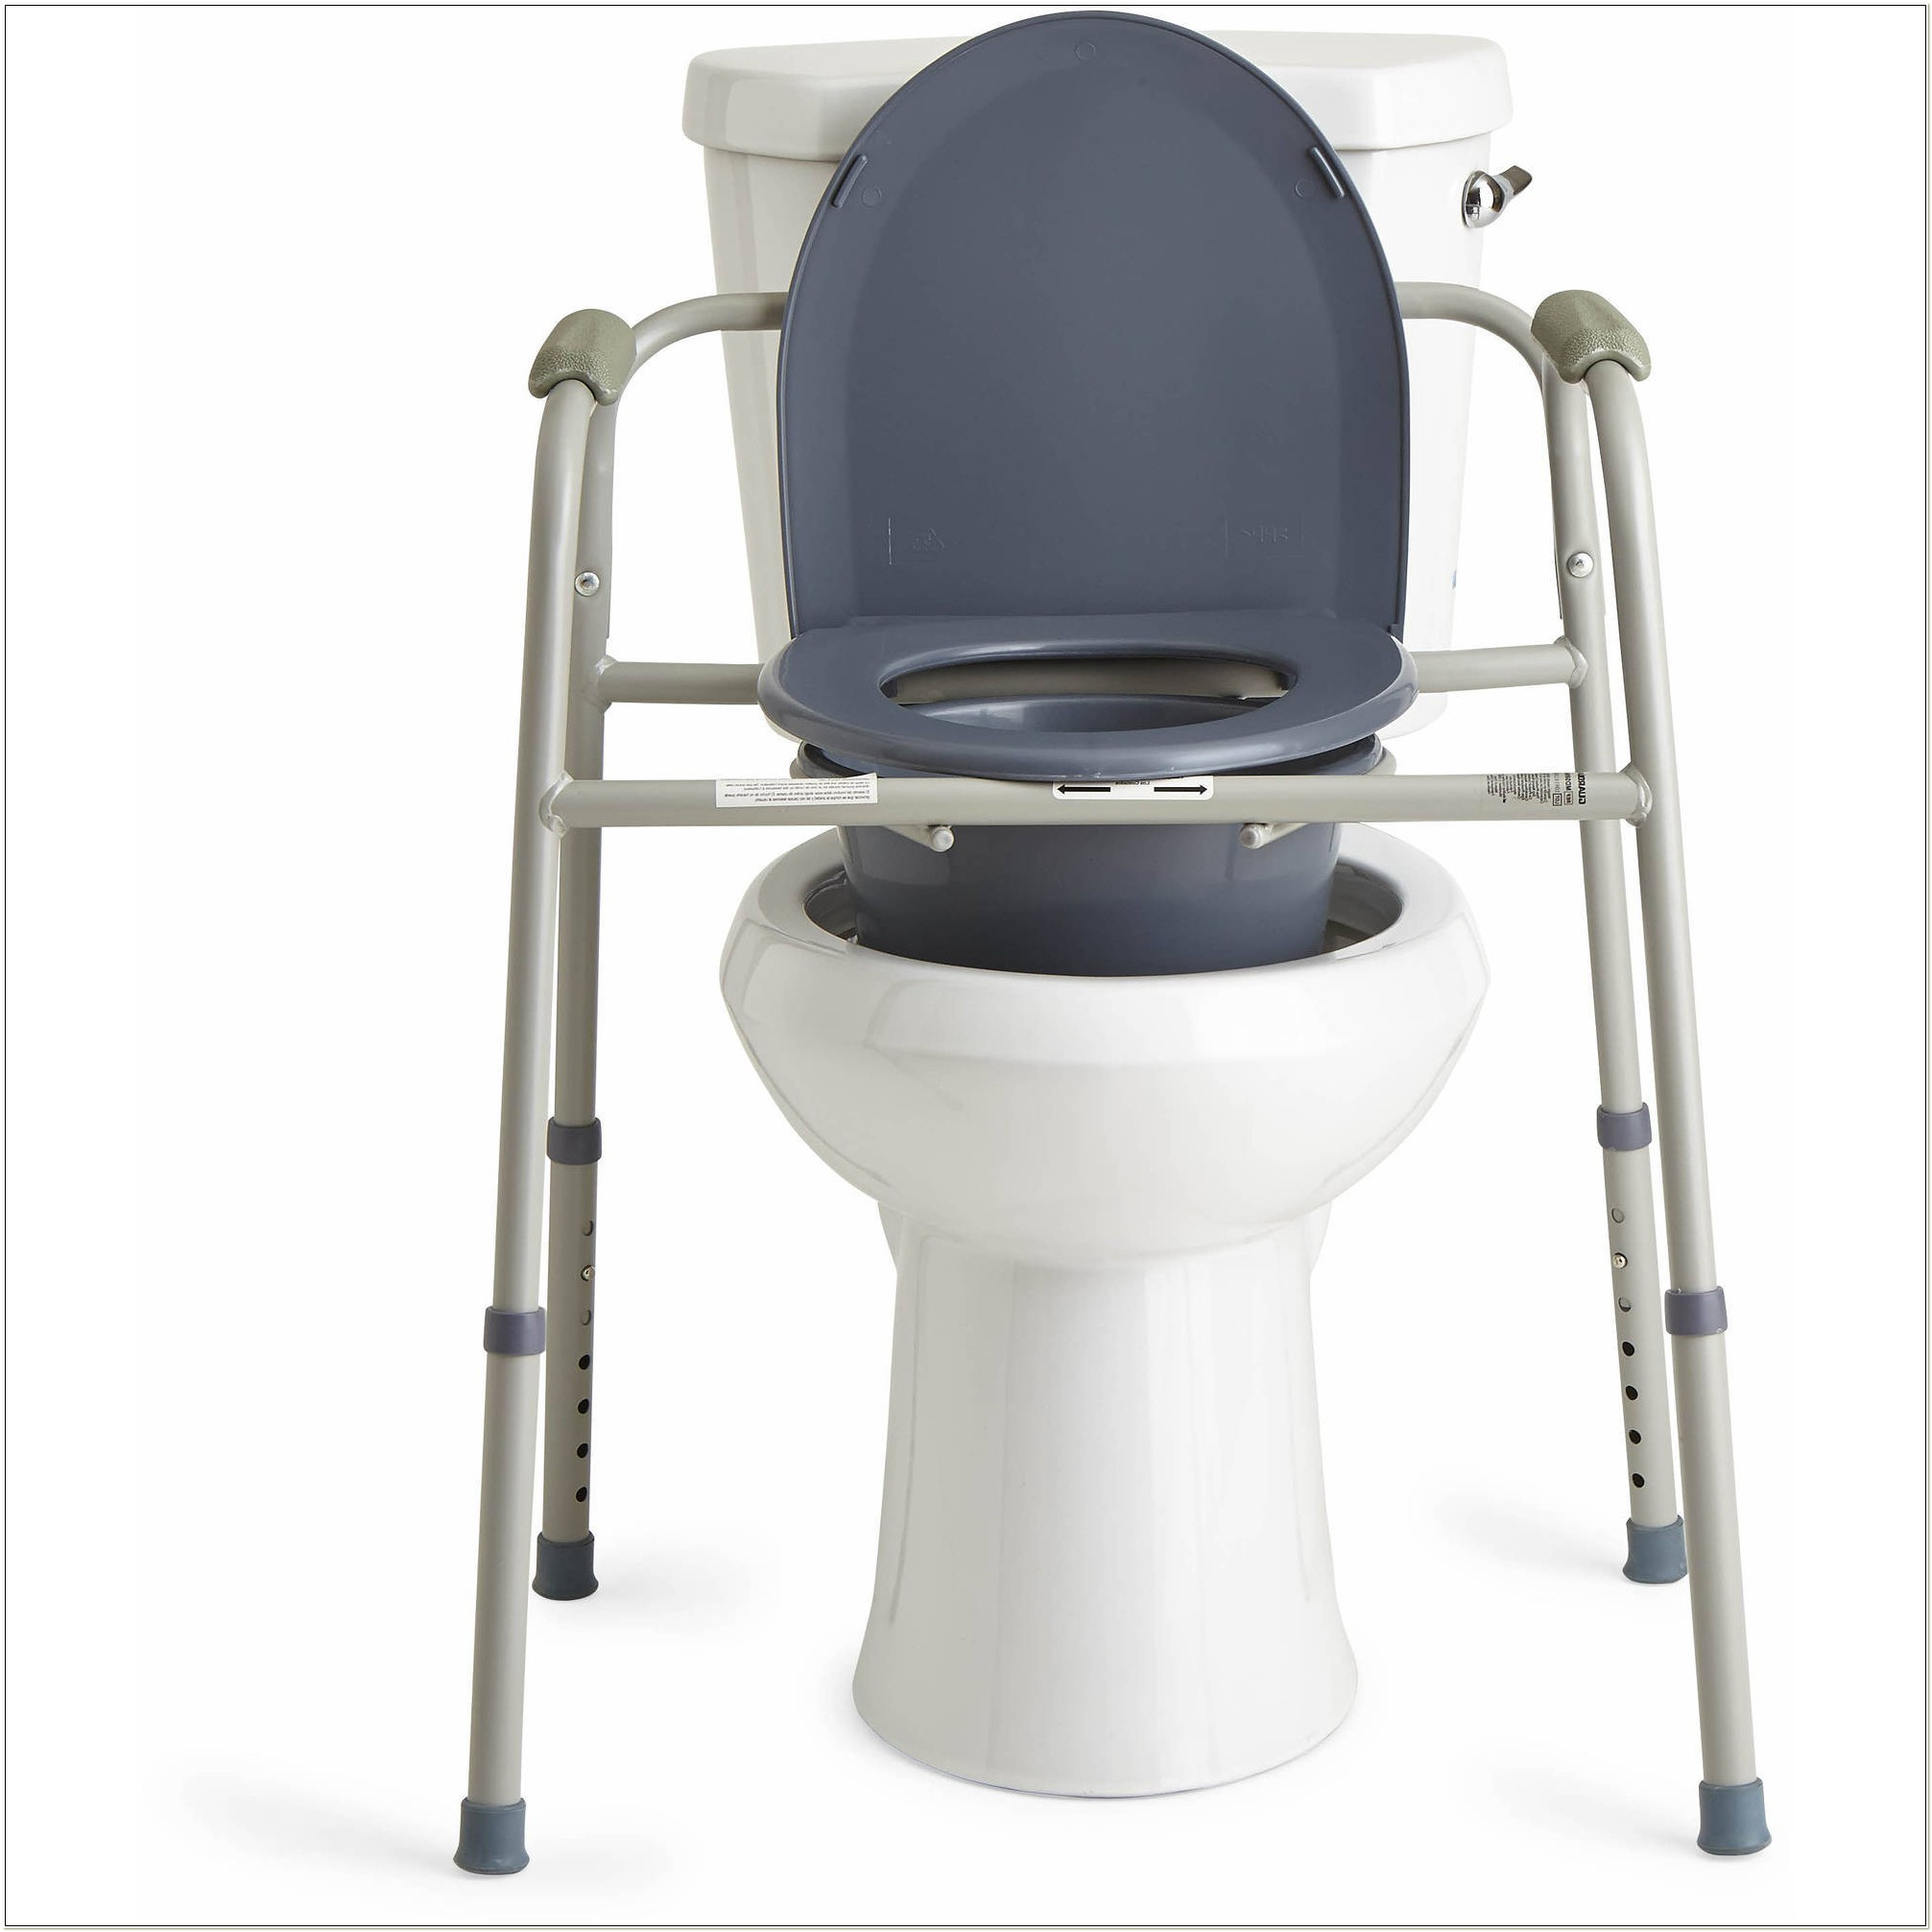 Potty Chairs For Adults Walmart